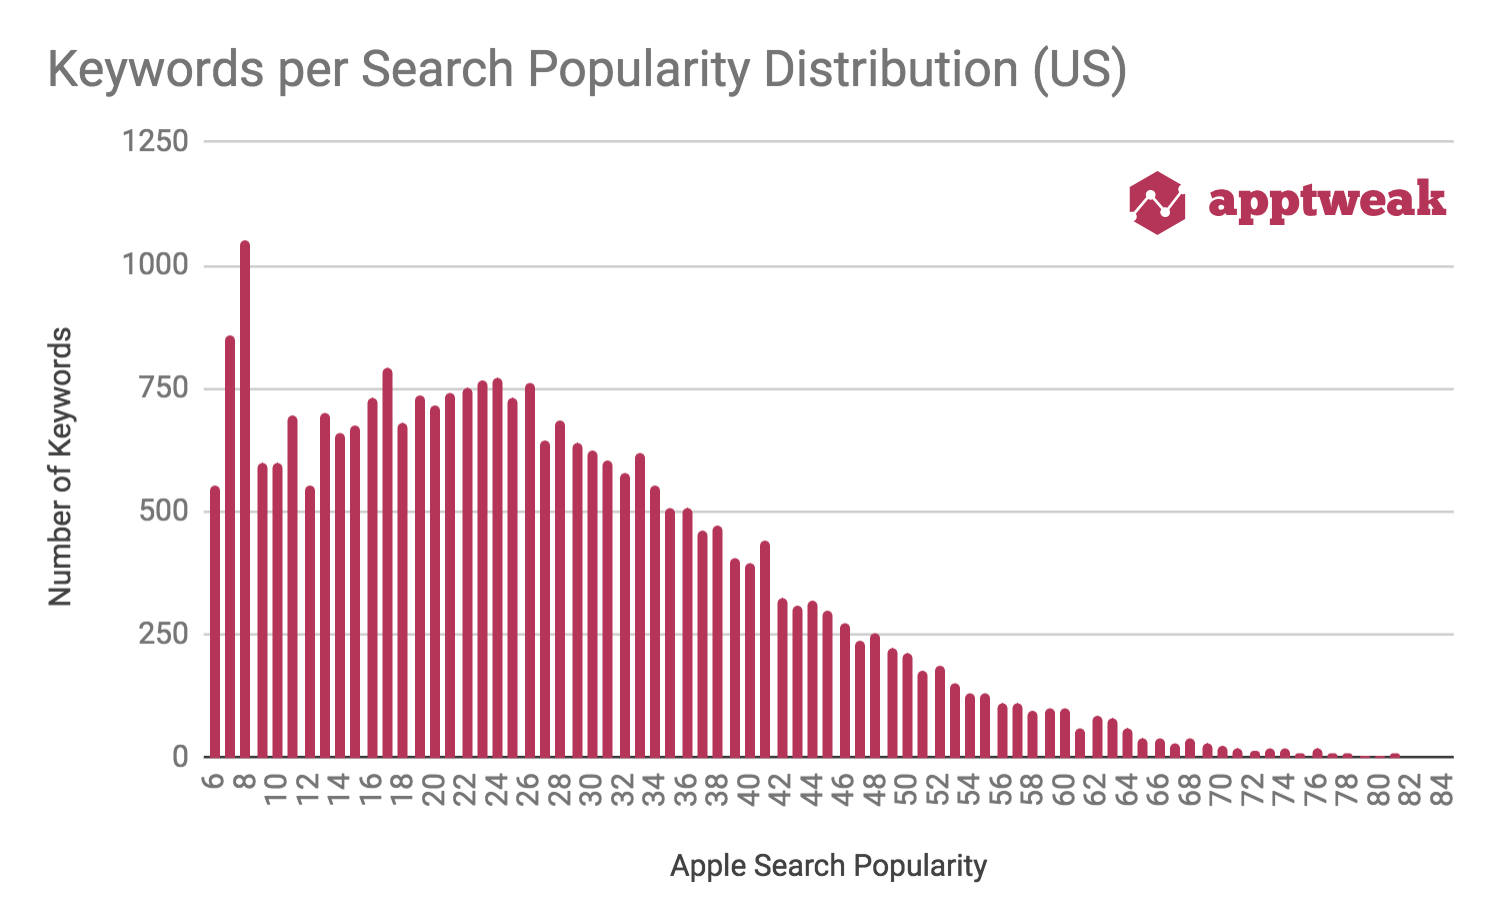 Keyword Search Popularity Distribution (US)